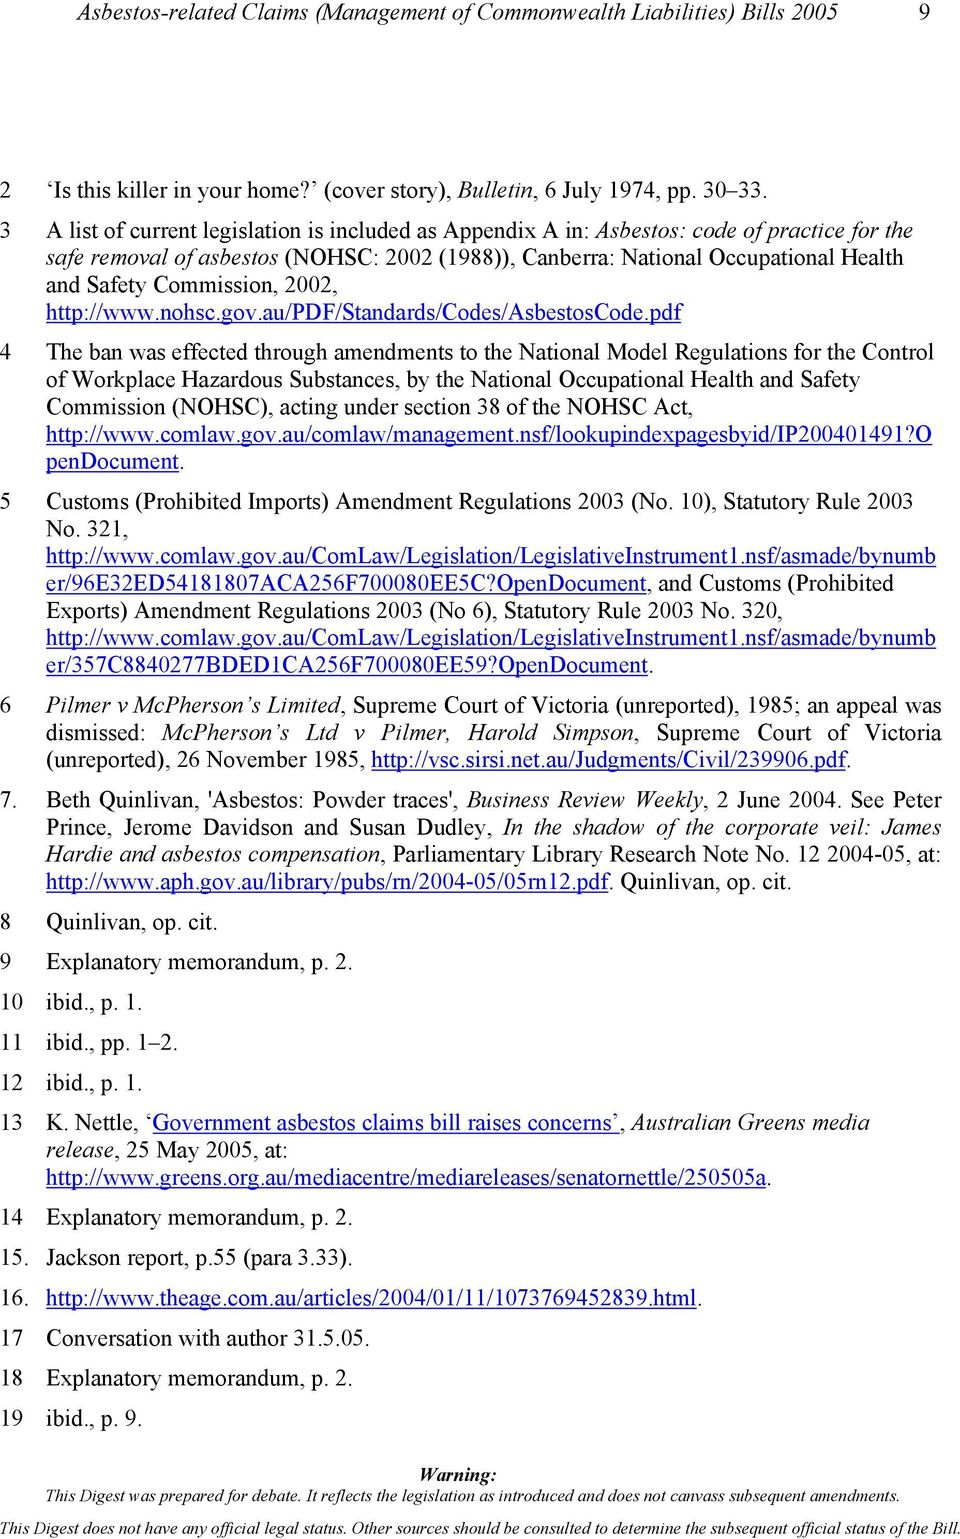 Commission, 2002, http://www.nohsc.gov.au/pdf/standards/codes/asbestoscode.